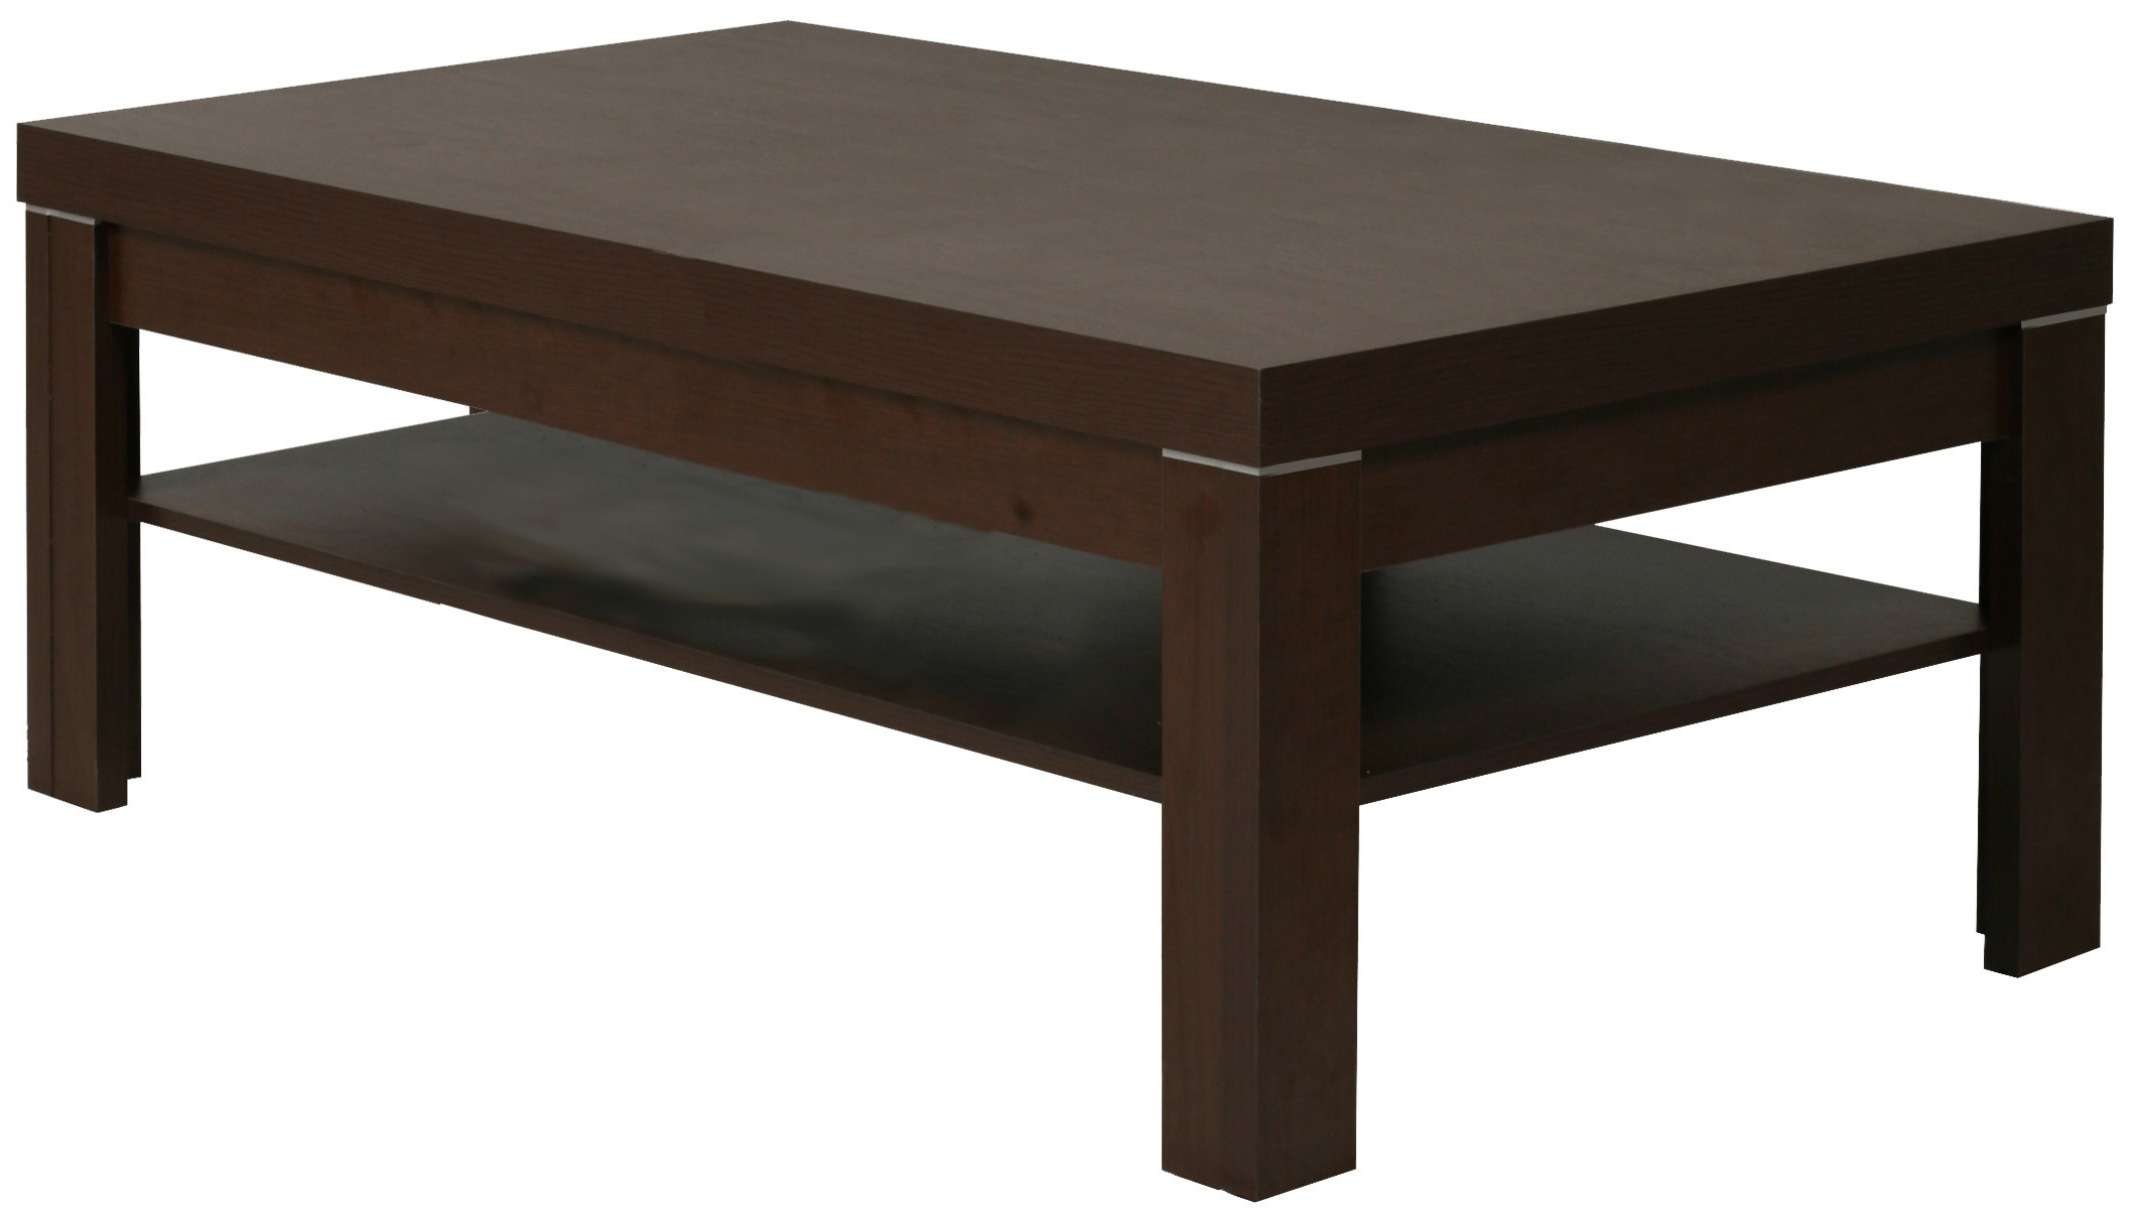 Best And Newest Dark Wood Coffee Tables Throughout Coffee Tables : Side Coffee Table Square Dark Wood With Drawers (View 5 of 20)